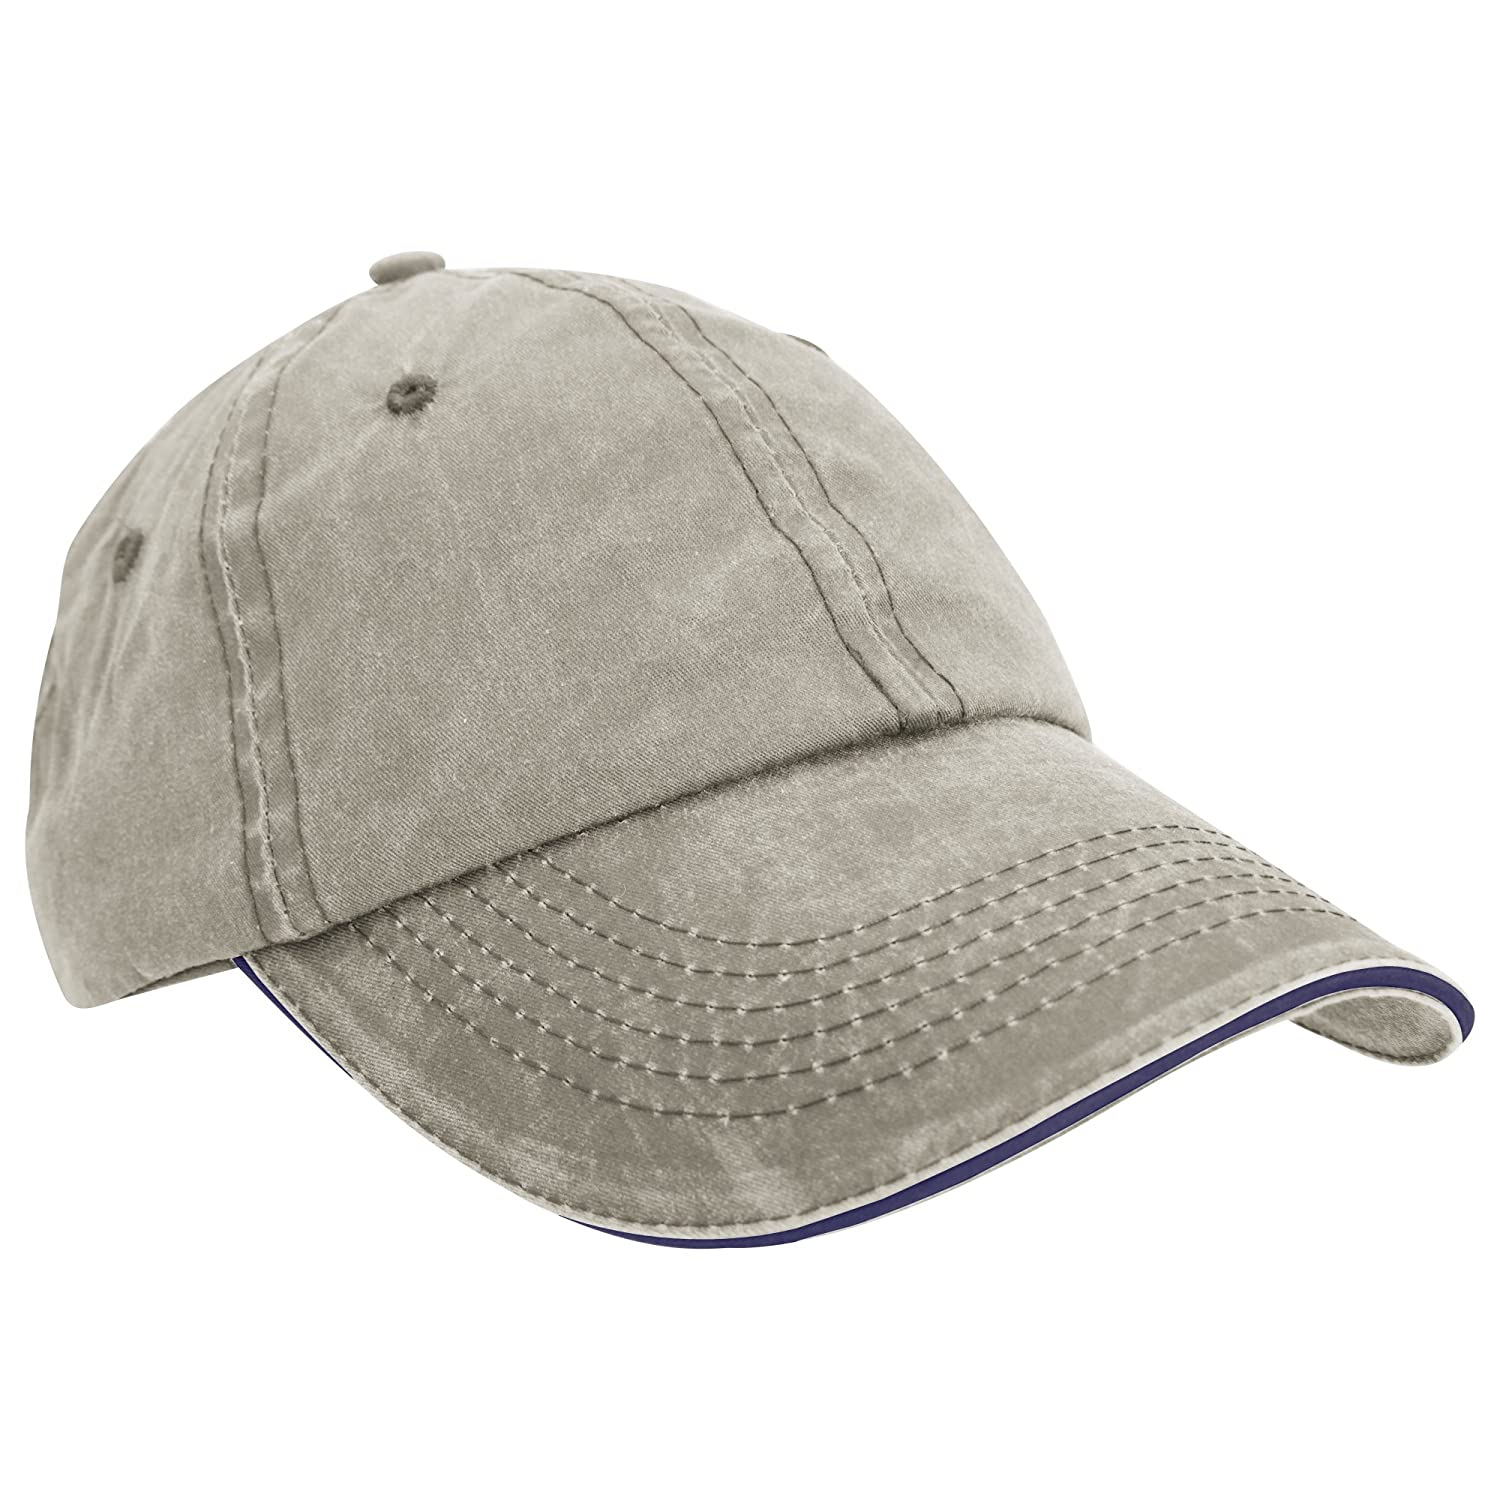 f3fe6ede232ca Result Washed Fine Line Cotton Baseball Cap With Sandwich Peak (One Size)  (Navy Putty)  Amazon.co.uk  Clothing